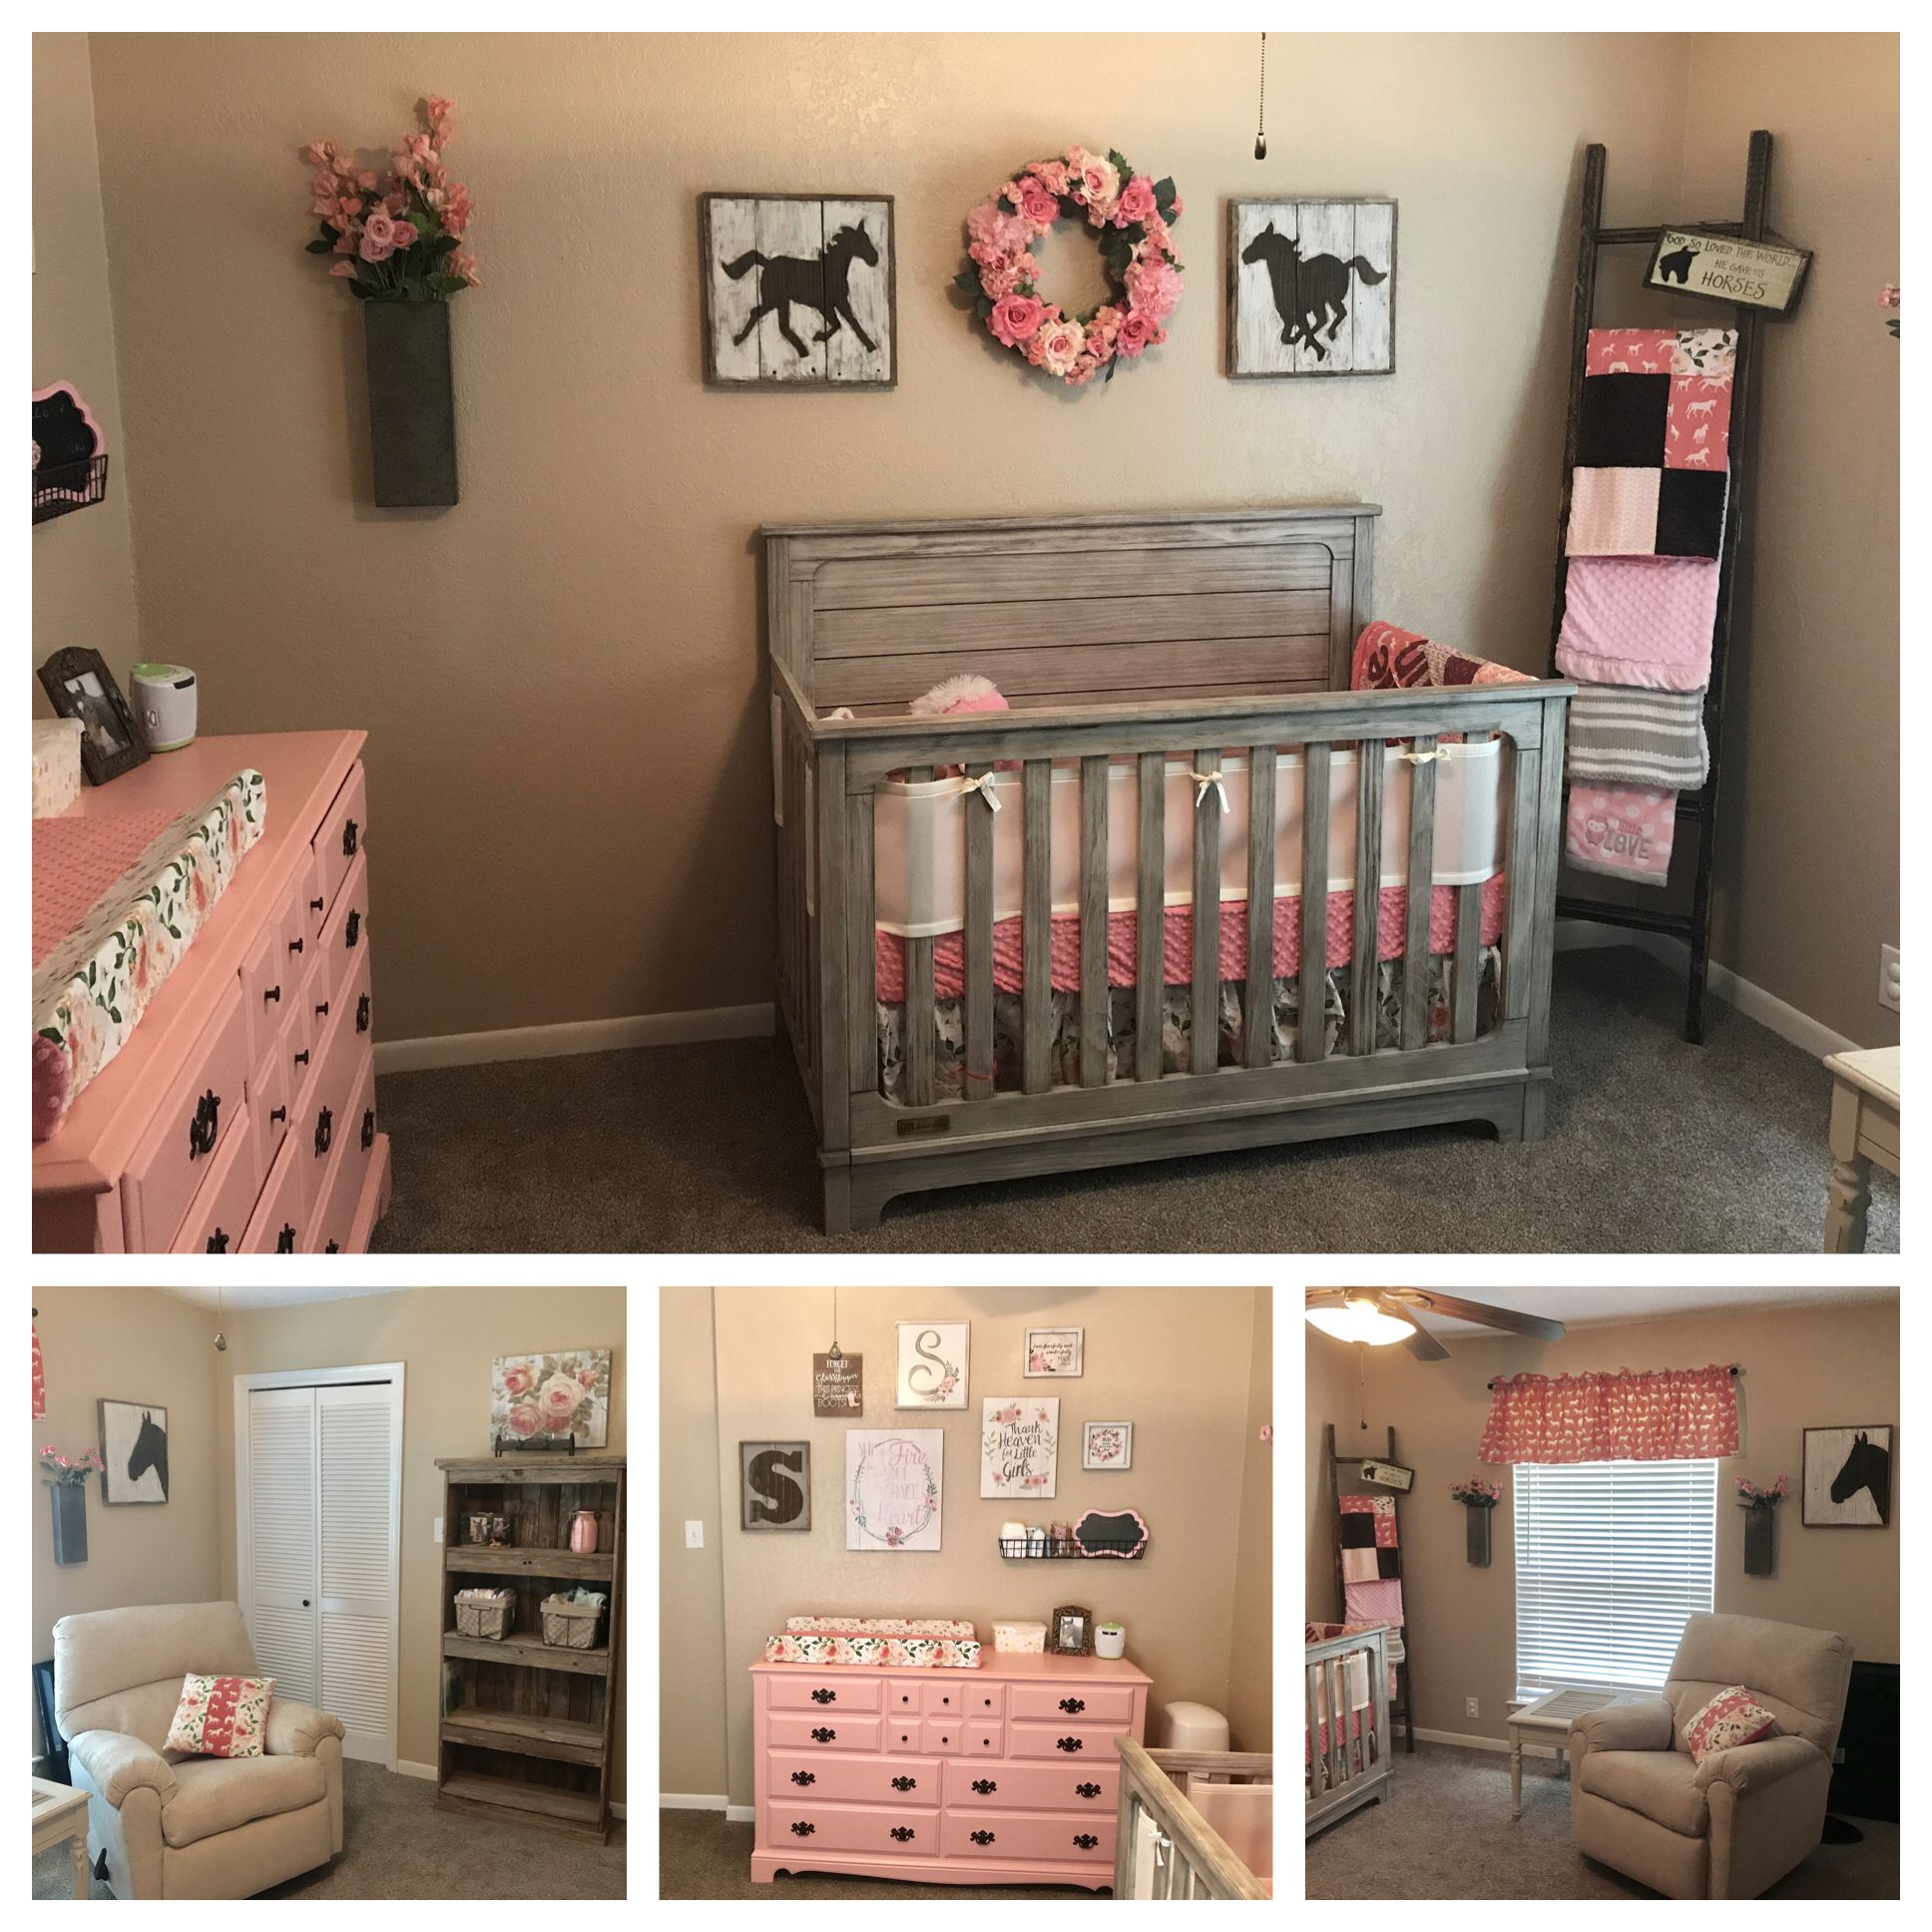 My Little Girl S Sweet Nursery Rustic Horses And Roses Barn Wood Accents And A Soft Dusty Coral Pink Baby Girl Room Girl Nursery Room Baby Girl Nursery Room